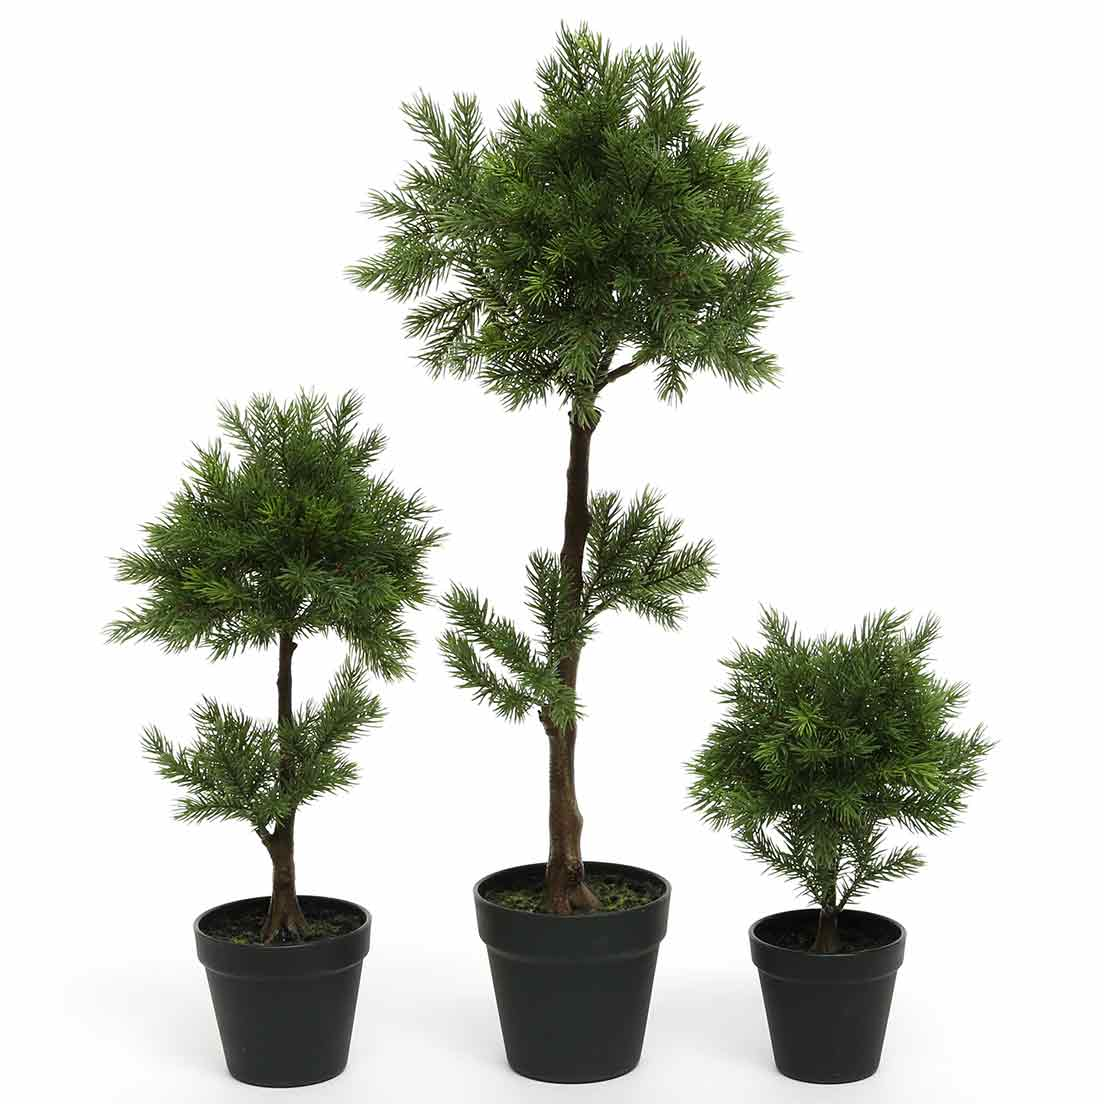 BALSAM FIR TOPIARY TREE IN BLACK HEAVY PLASTIC POT SET OF 3